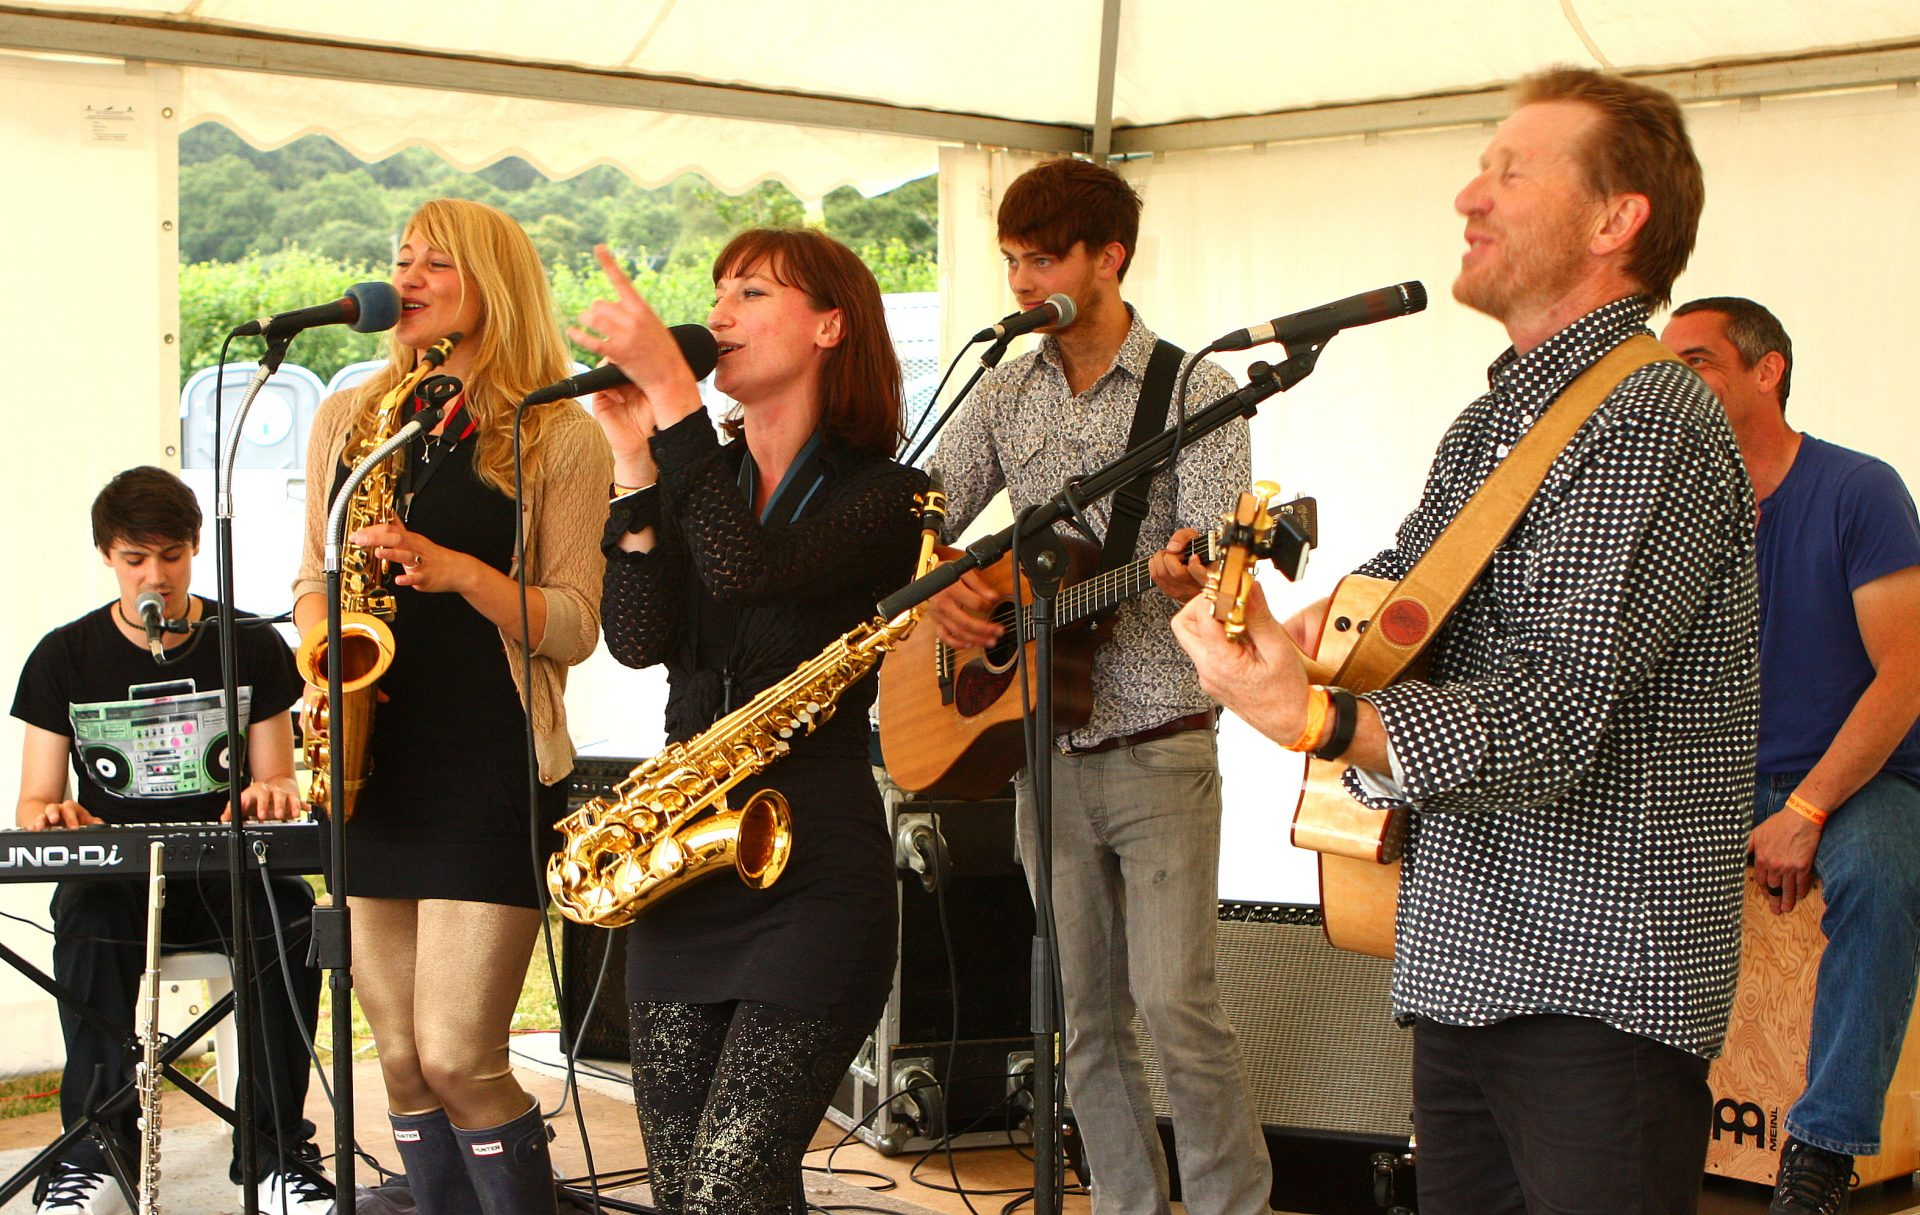 Johny Fuller with his band at Chagford Show. I think it was 2011.